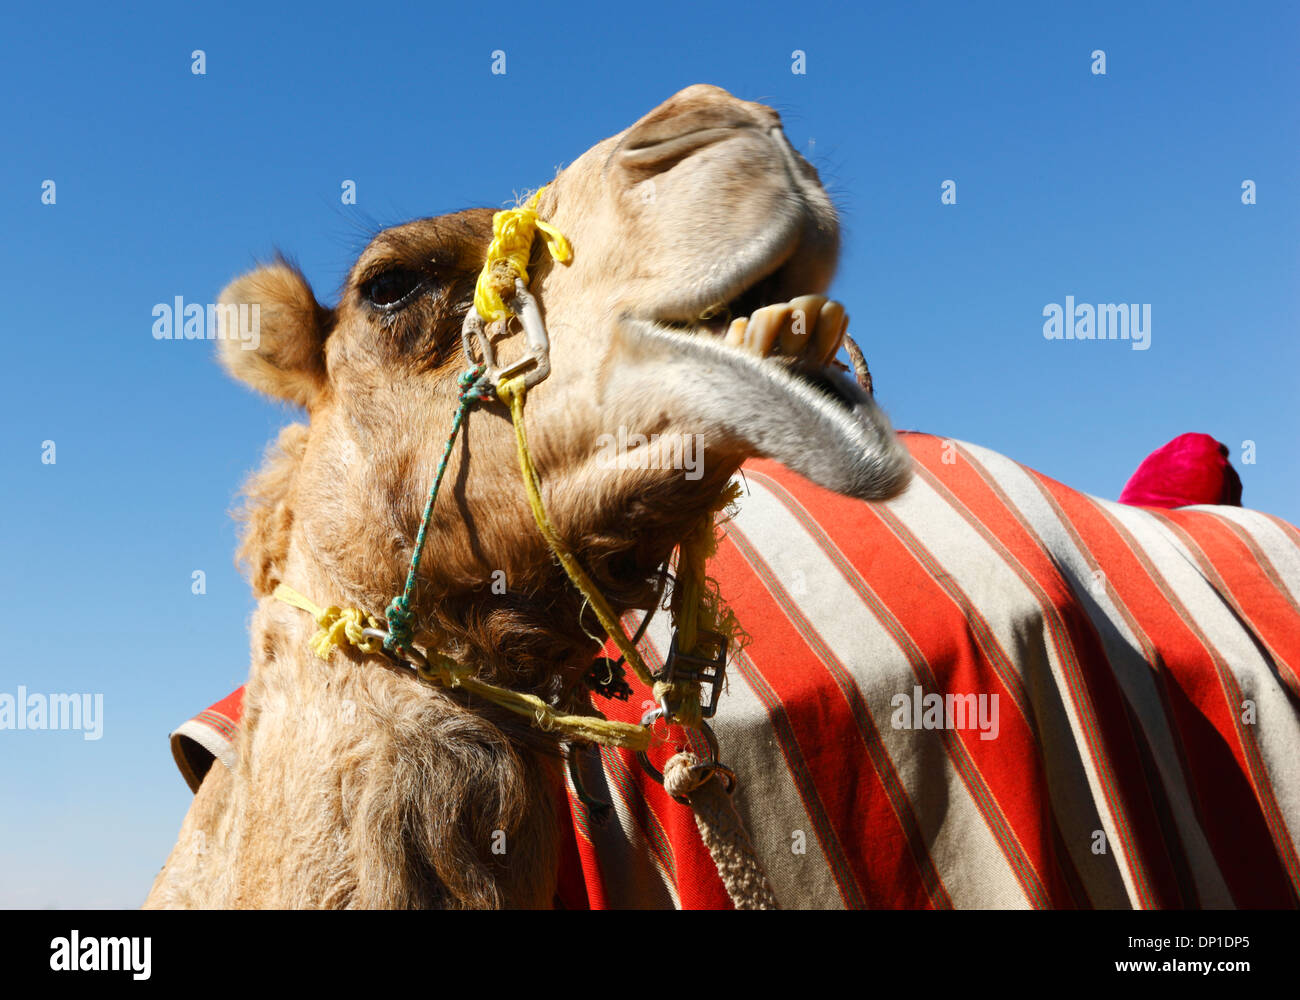 Camel head close up - Stock Image